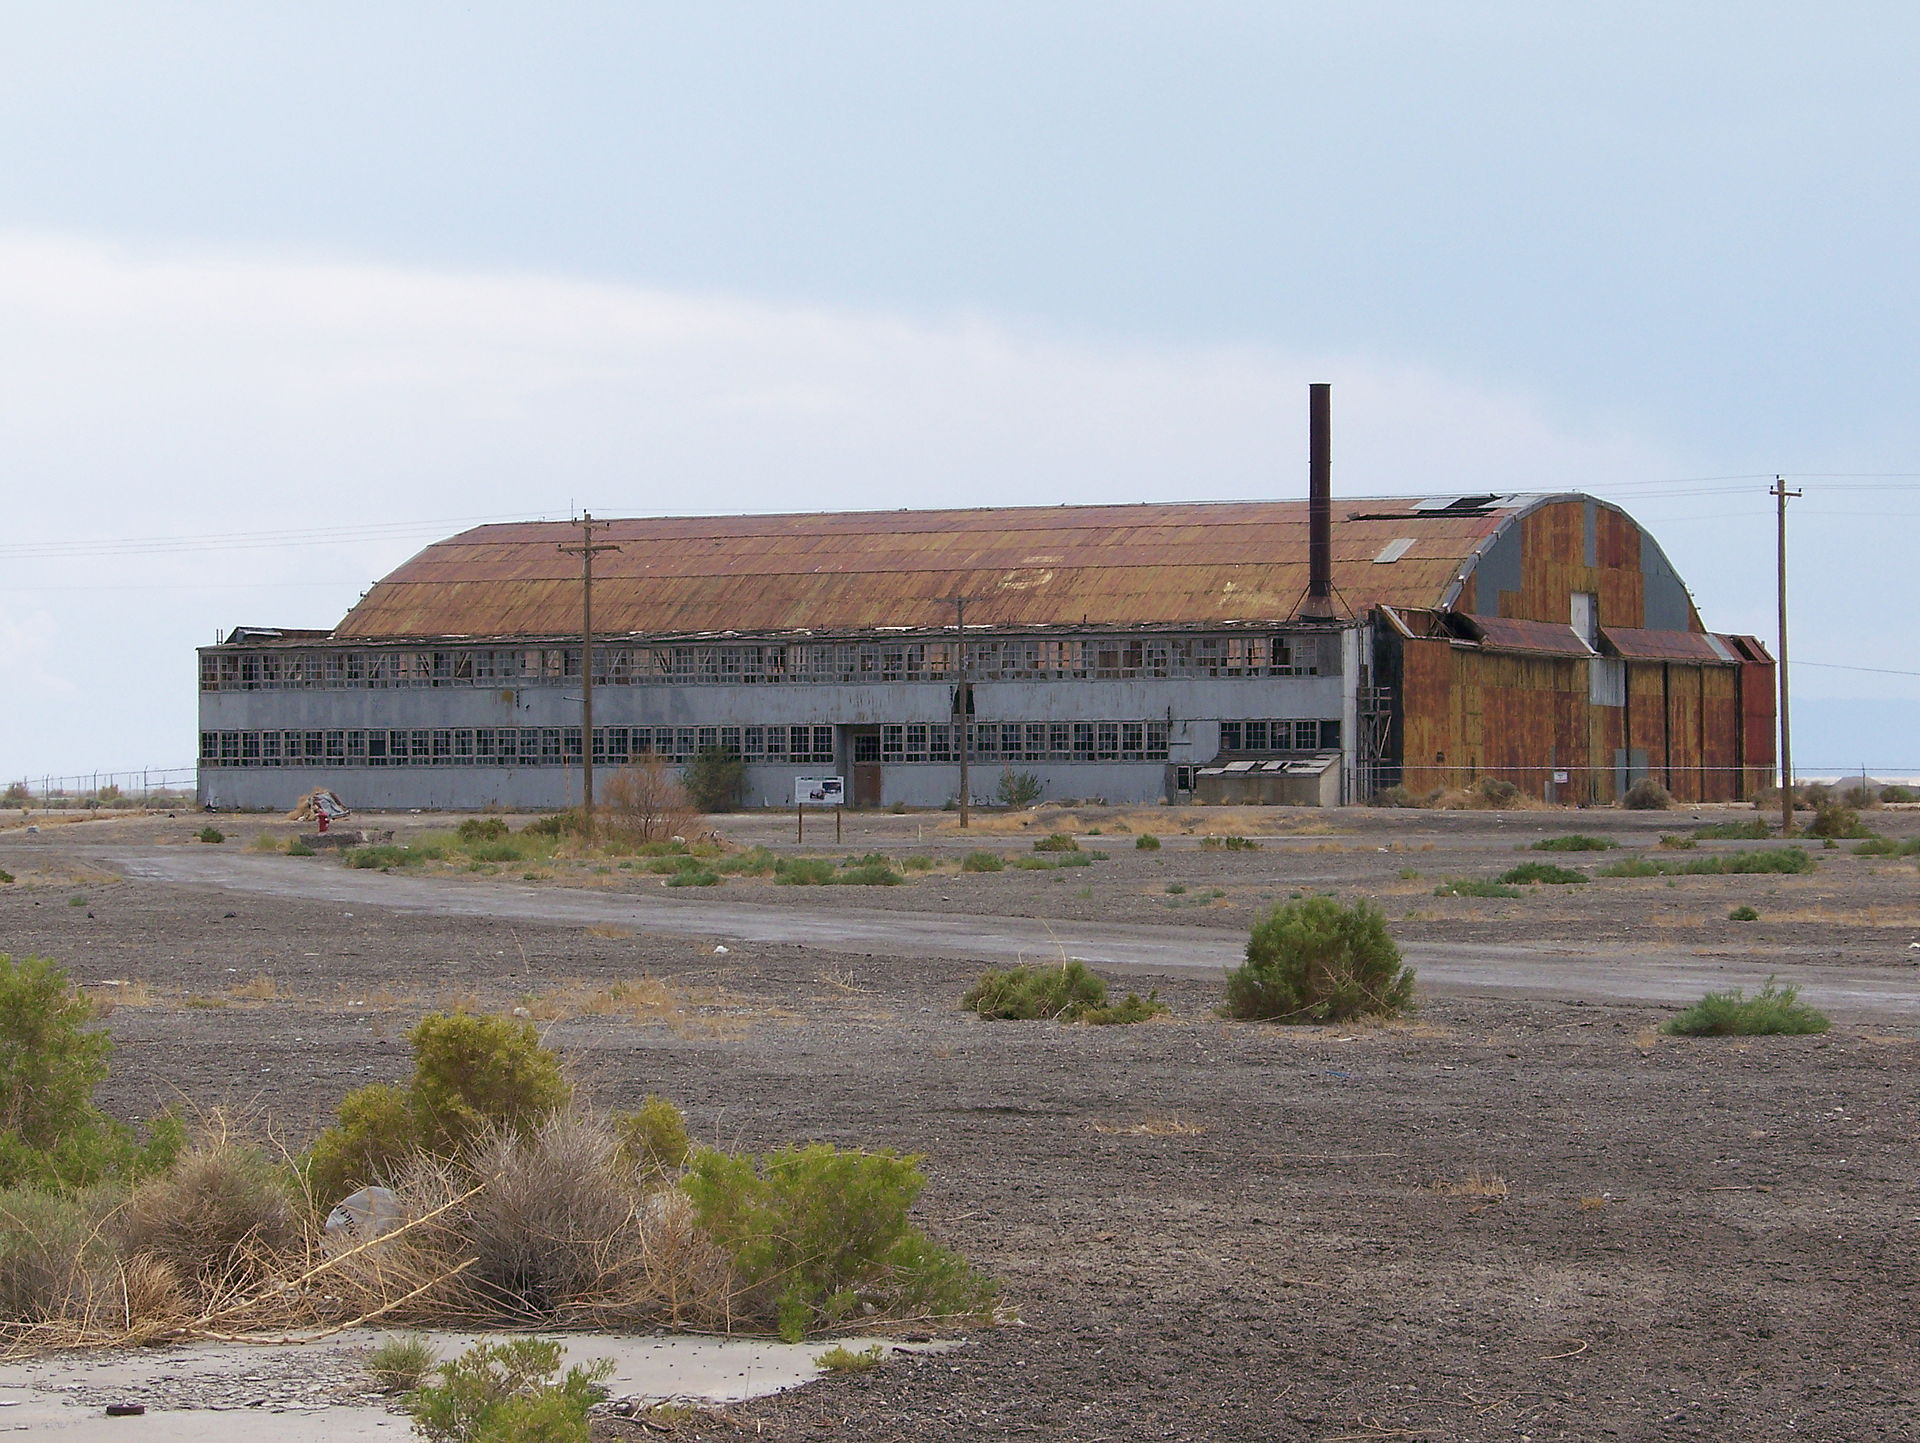 The hangar that once housed the Enola Gay.